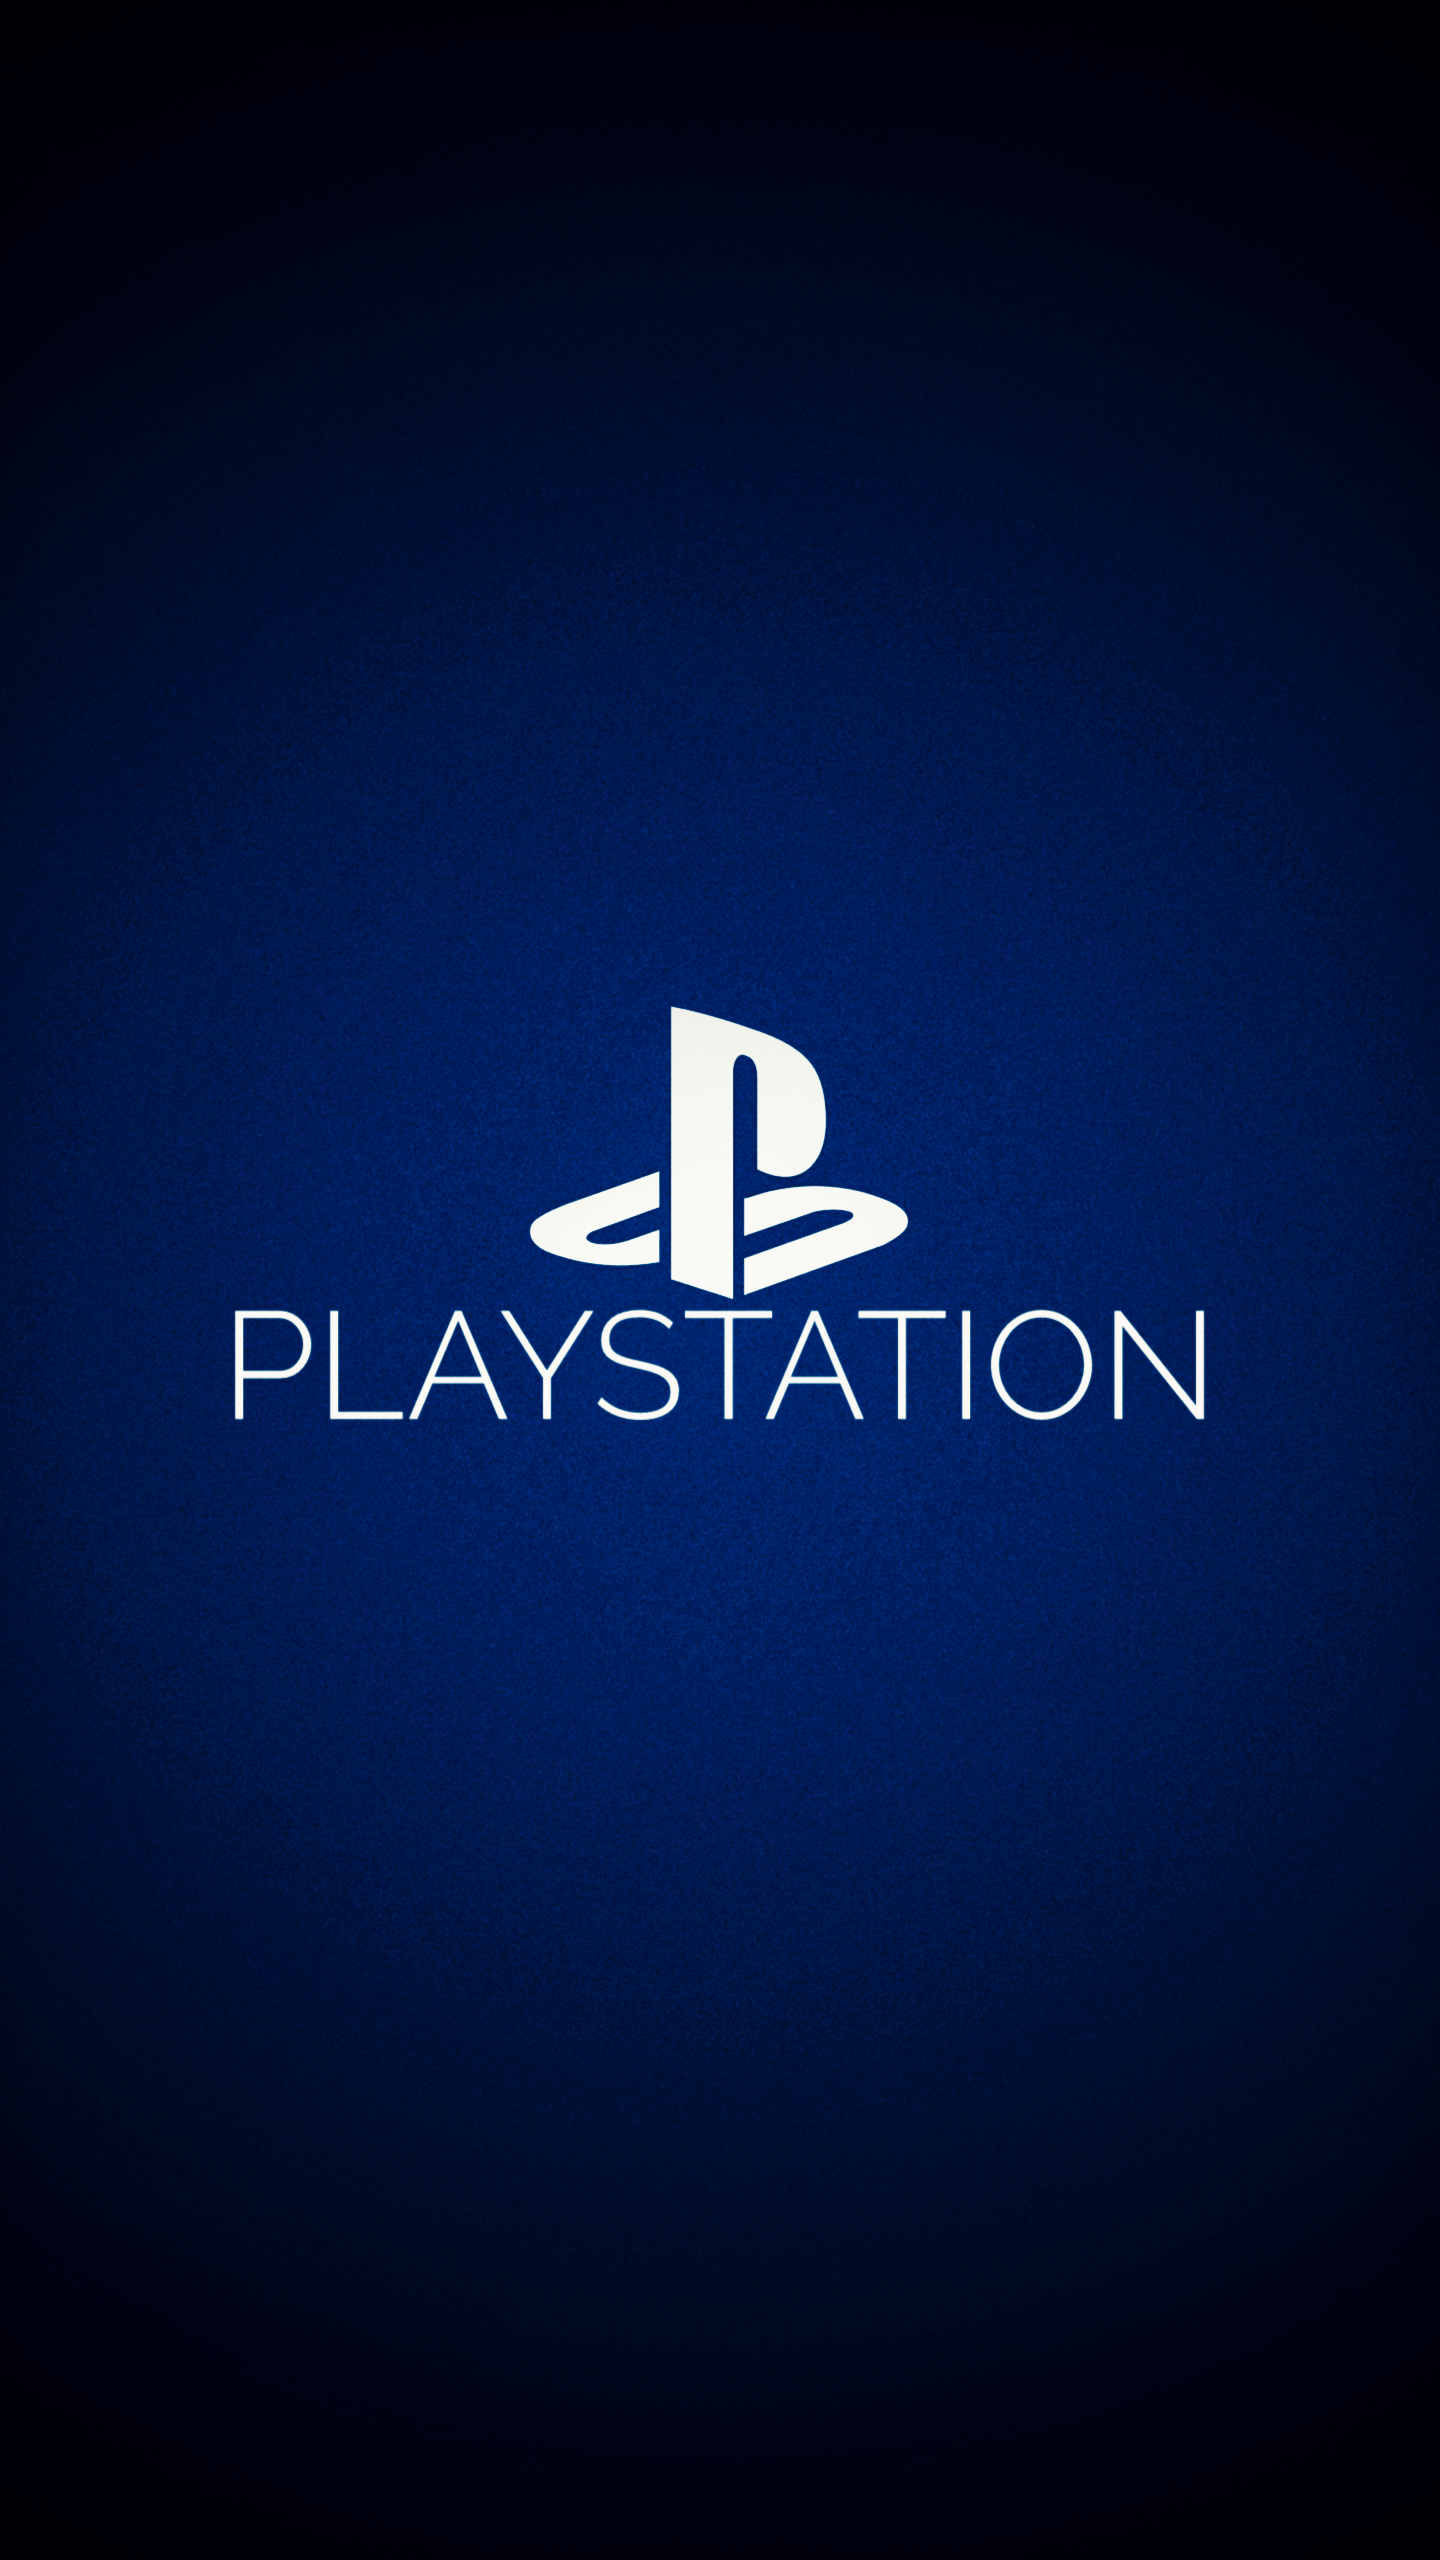 1440x2560 Made my own PlayStation phone wallpaper! : playstation